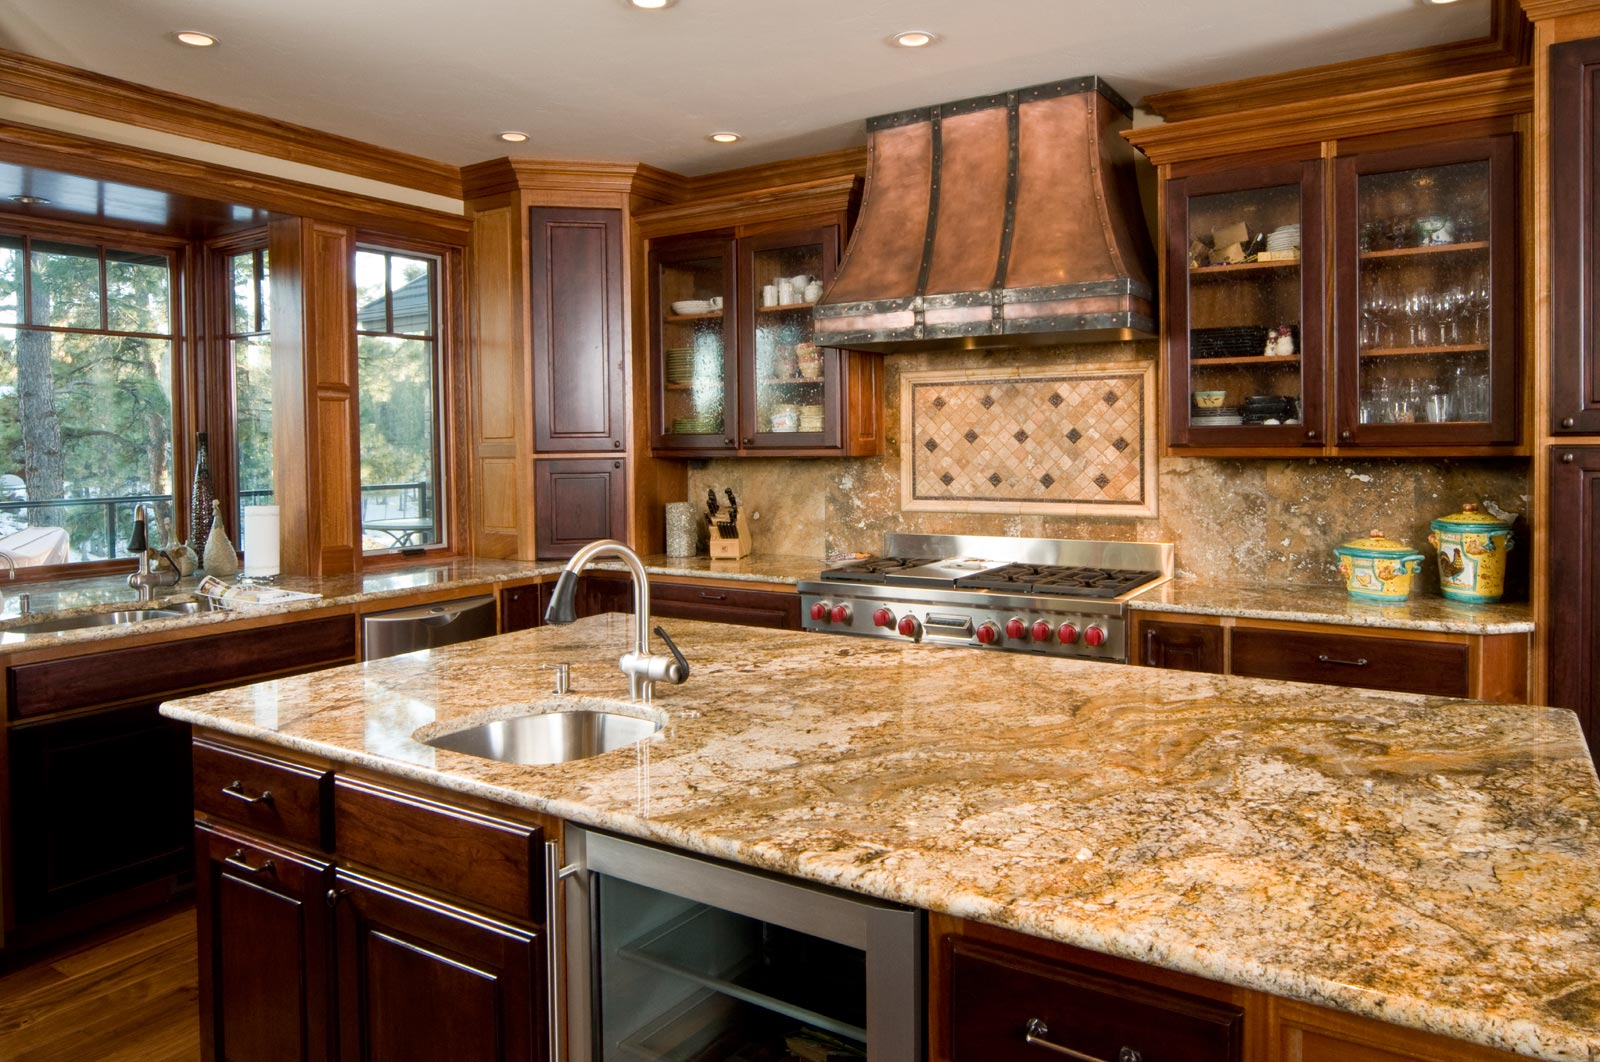 Bathroom And Kitchen Cabinets In Denver Boulder Kreative Kitchens Marble Countertops